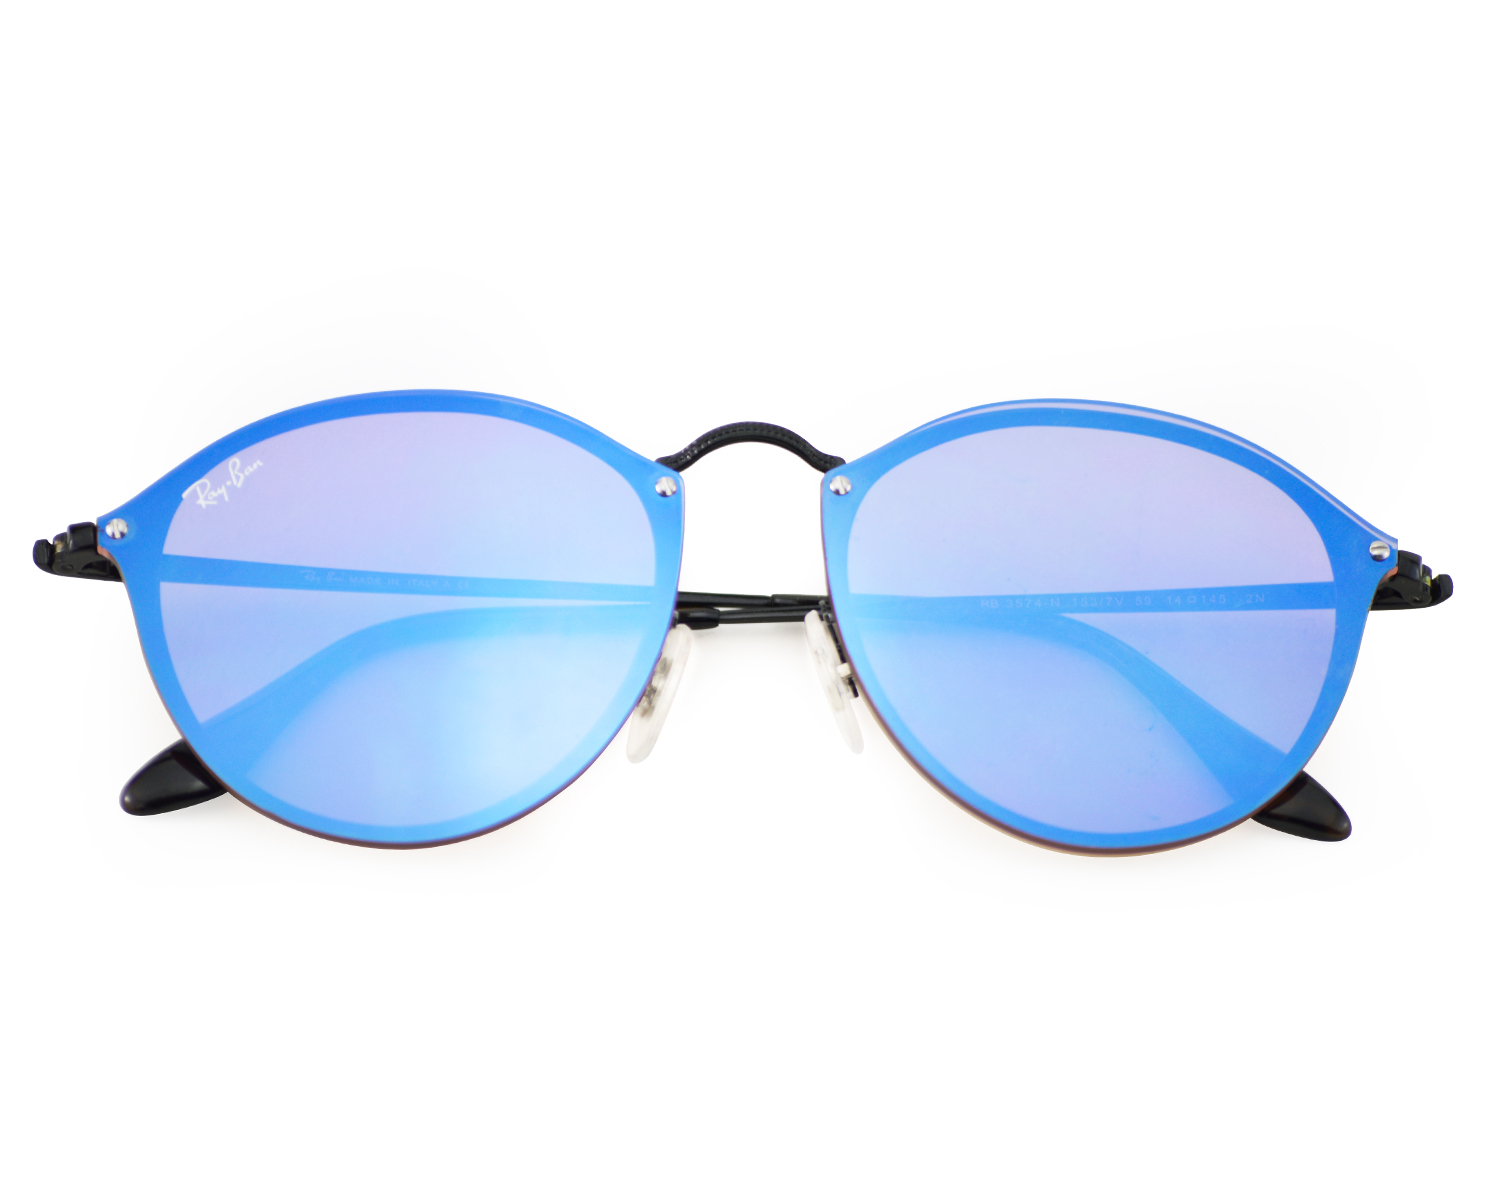 65f2511e199 Ray-Ban RB3574N Blaze Round 153 7V Black Frame  Violet Blue Mirror Lenses  Unisex Sunglasses 59mm